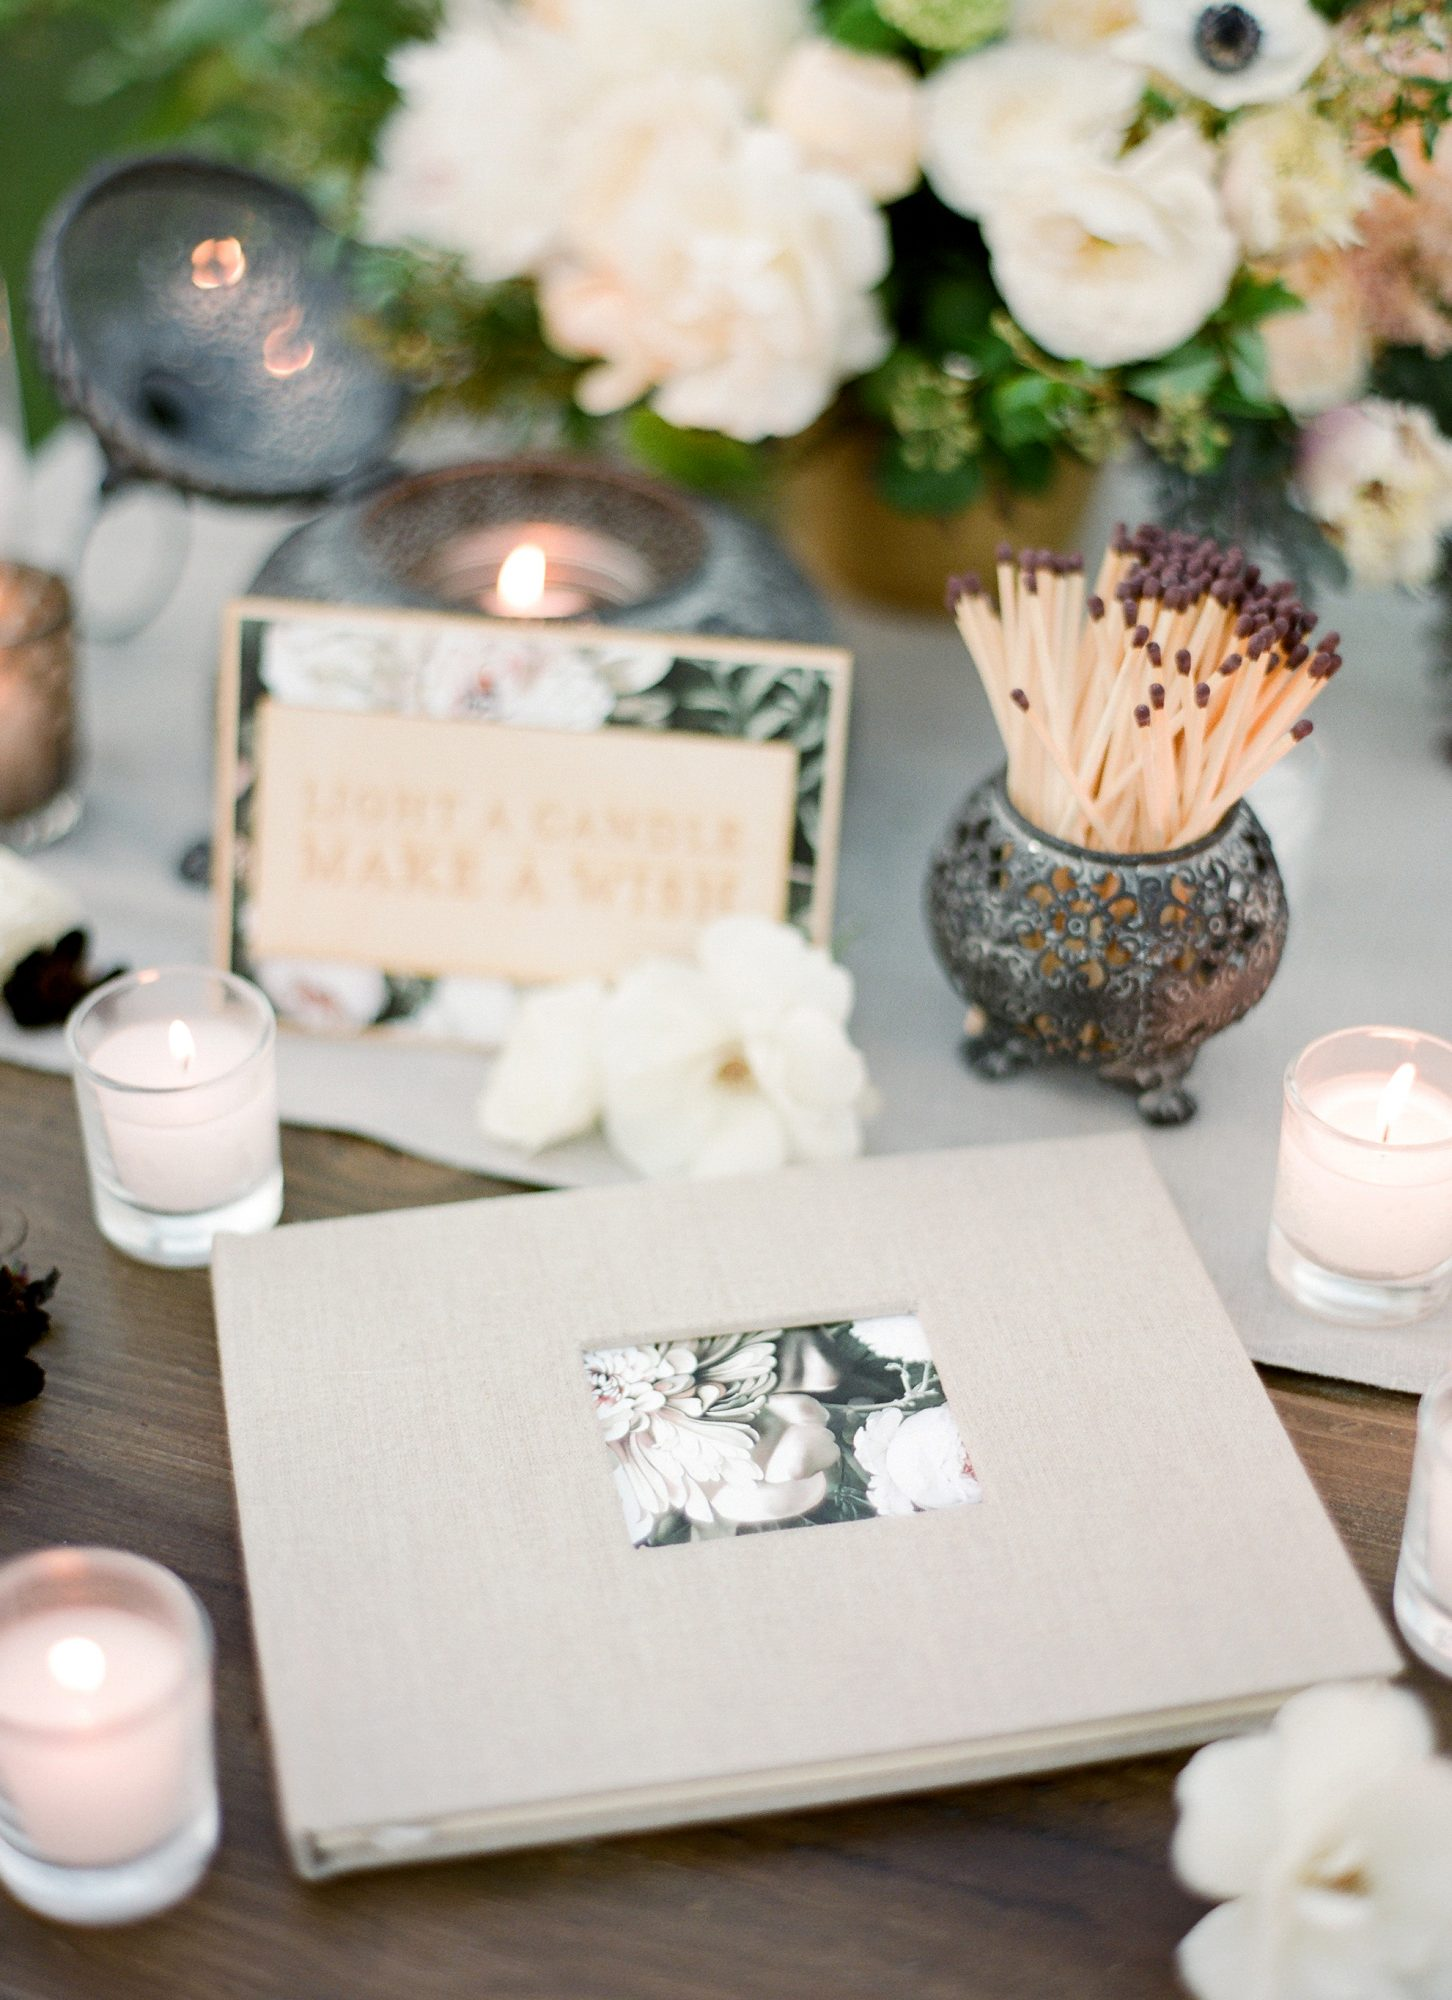 A floral design made this guest book stand out.